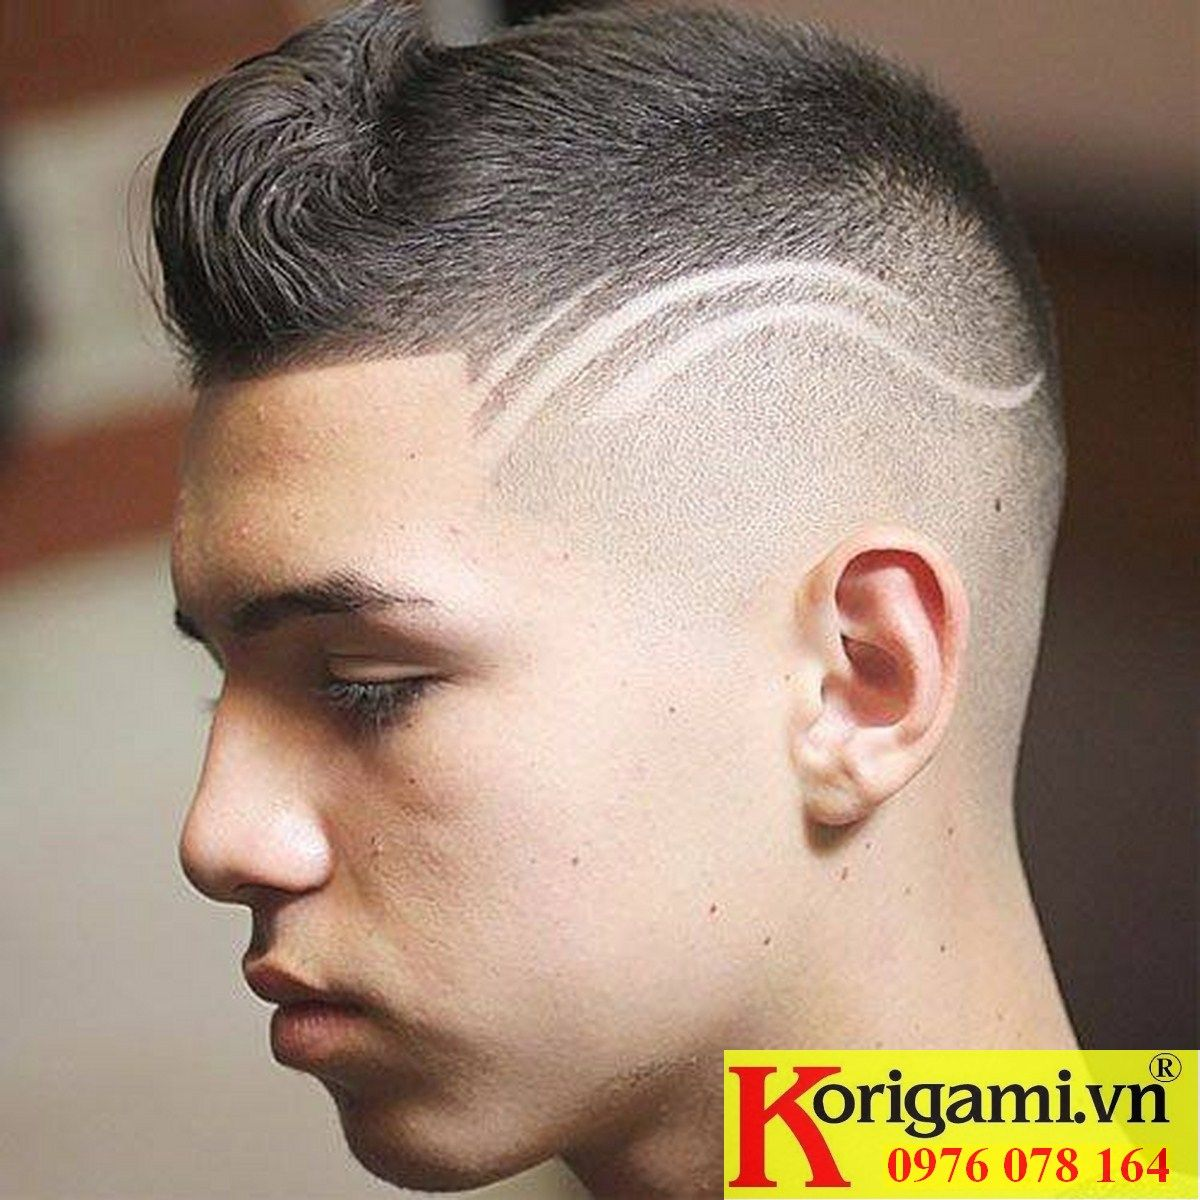 Boy haircuts high fade pin by truong day nghe toc korigami hanoi on haircut with tatoo